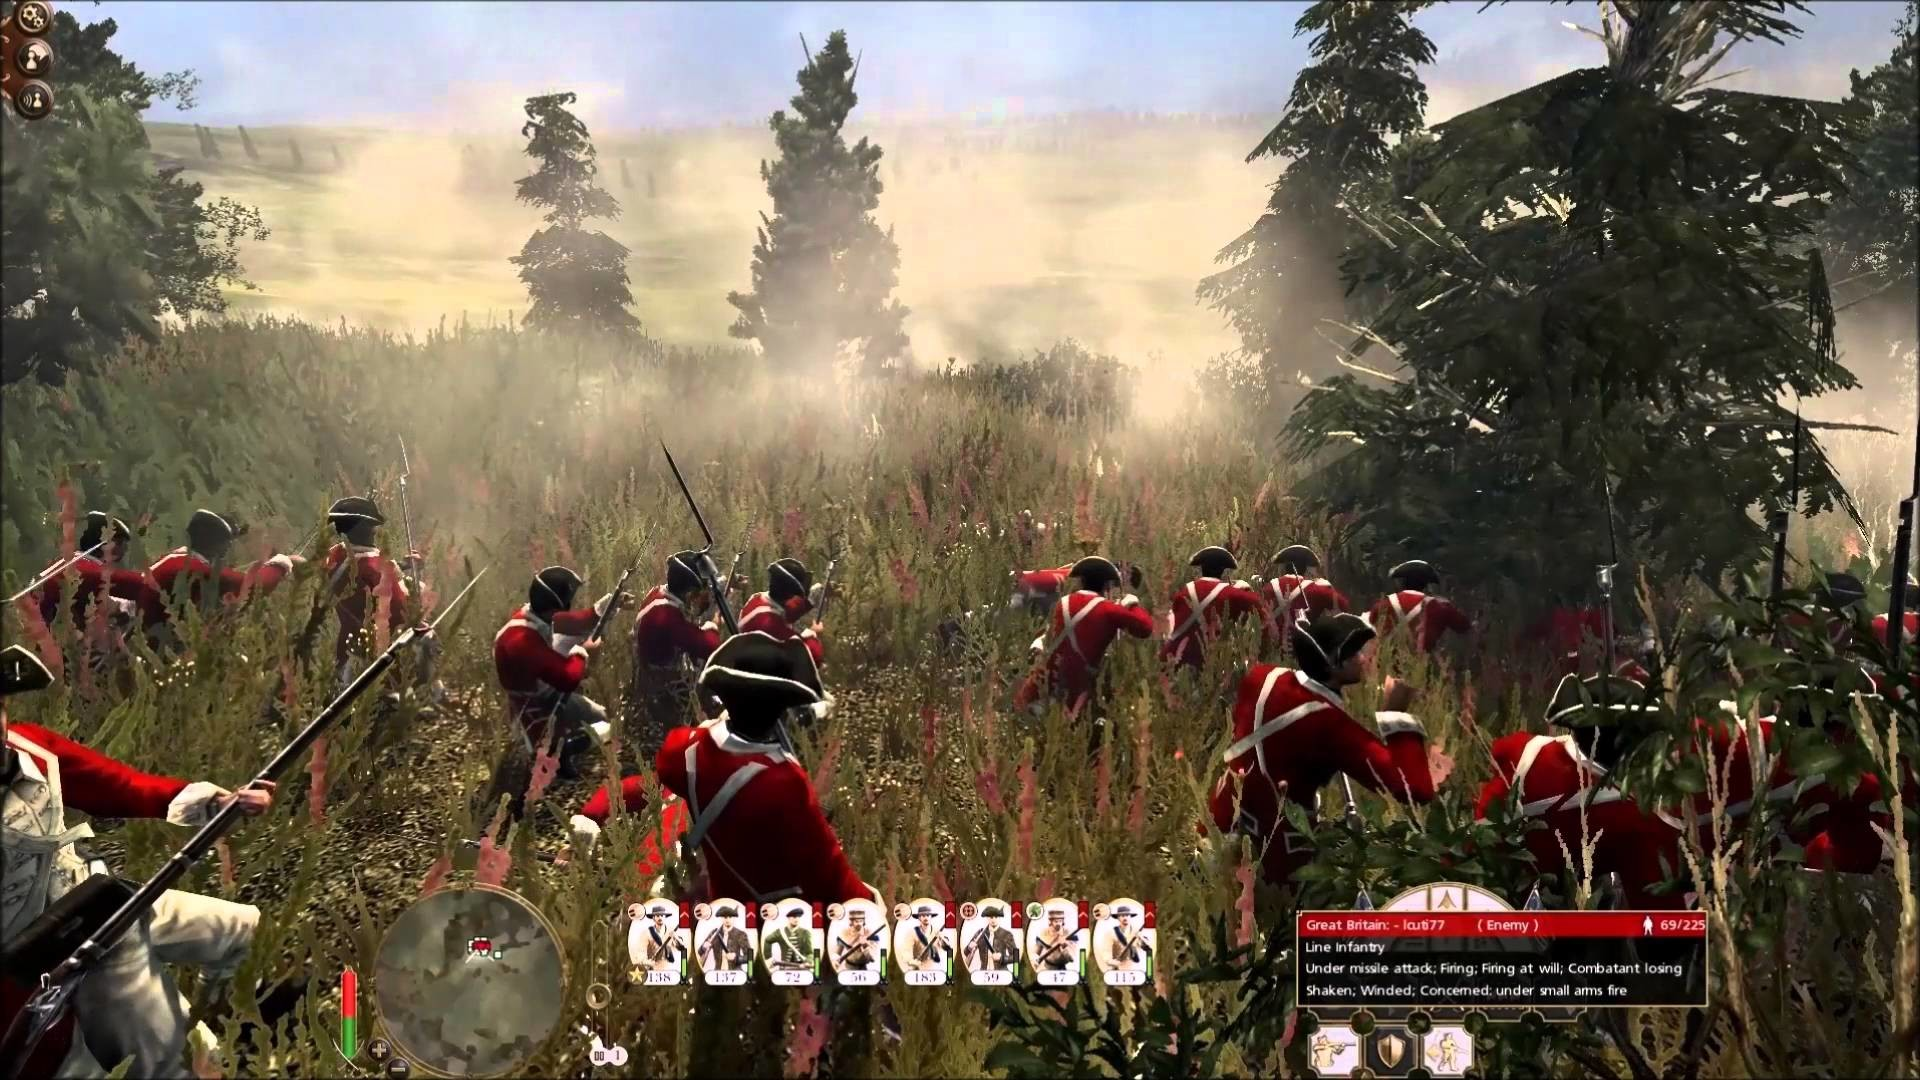 Res: 1920x1080, Battle of Kings Mountain - October 7, 1780 (American Revolutionary War) -  YouTube